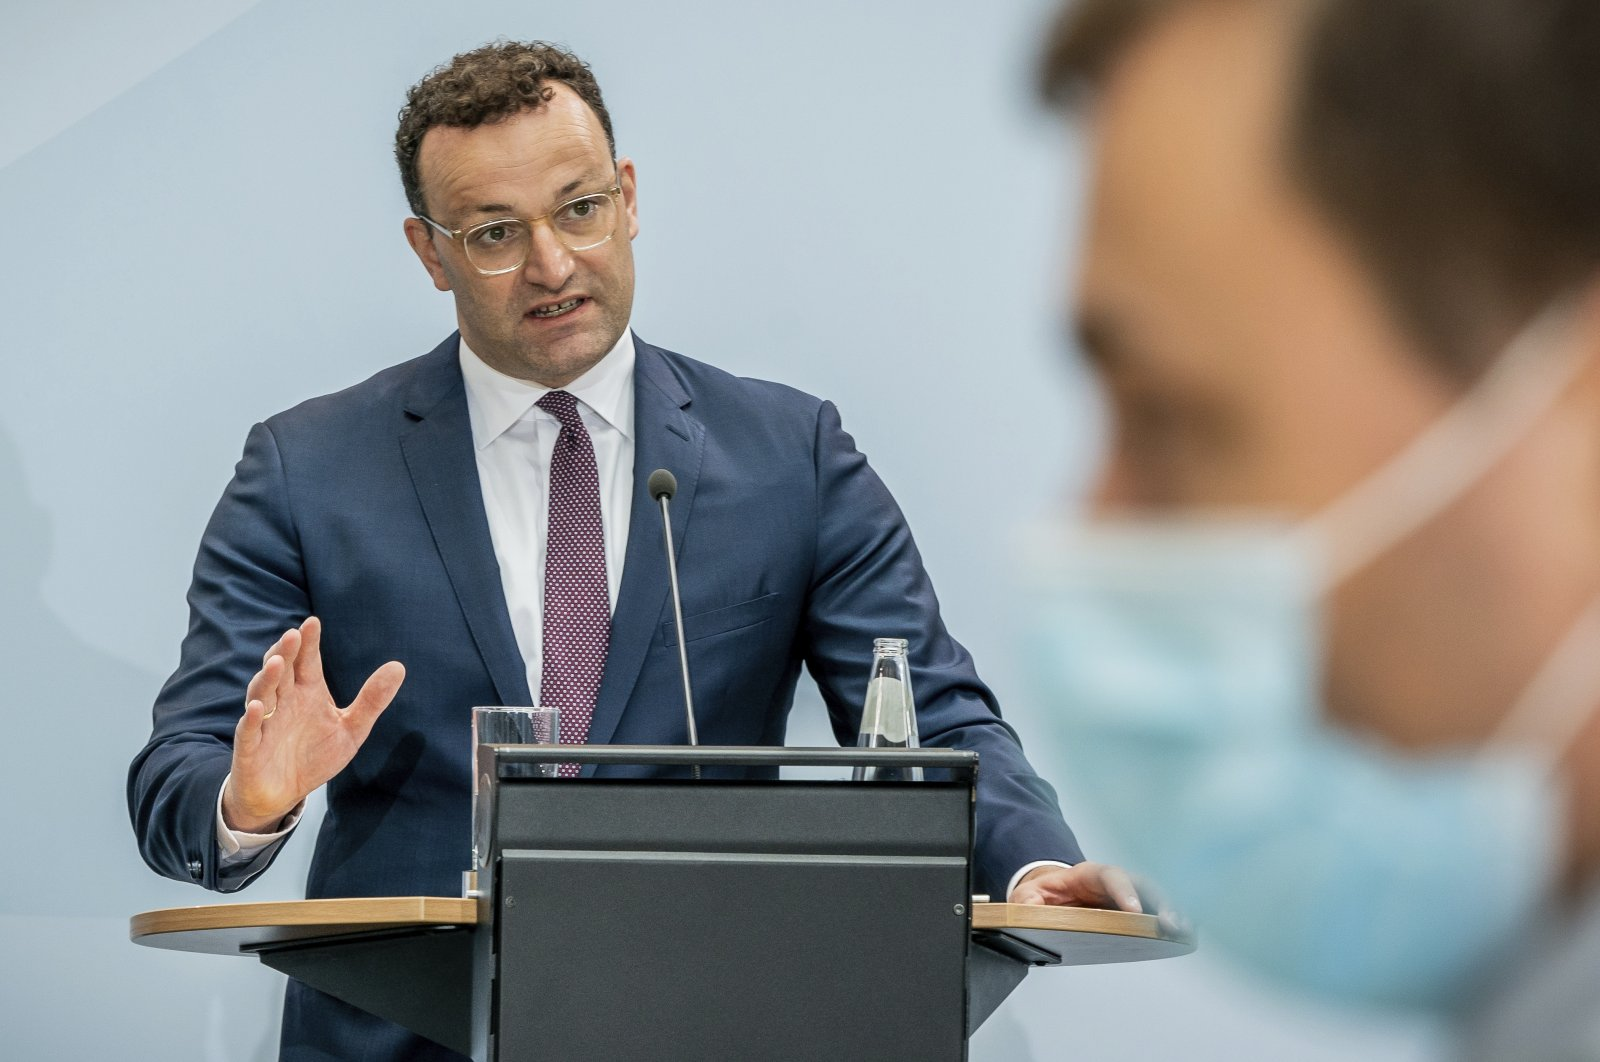 Jens Spahn, federal minister of health, gives a press conference at the Federal Ministry of Health in Berlin, Germany, Aug. 26, 2020. (AP Photo)